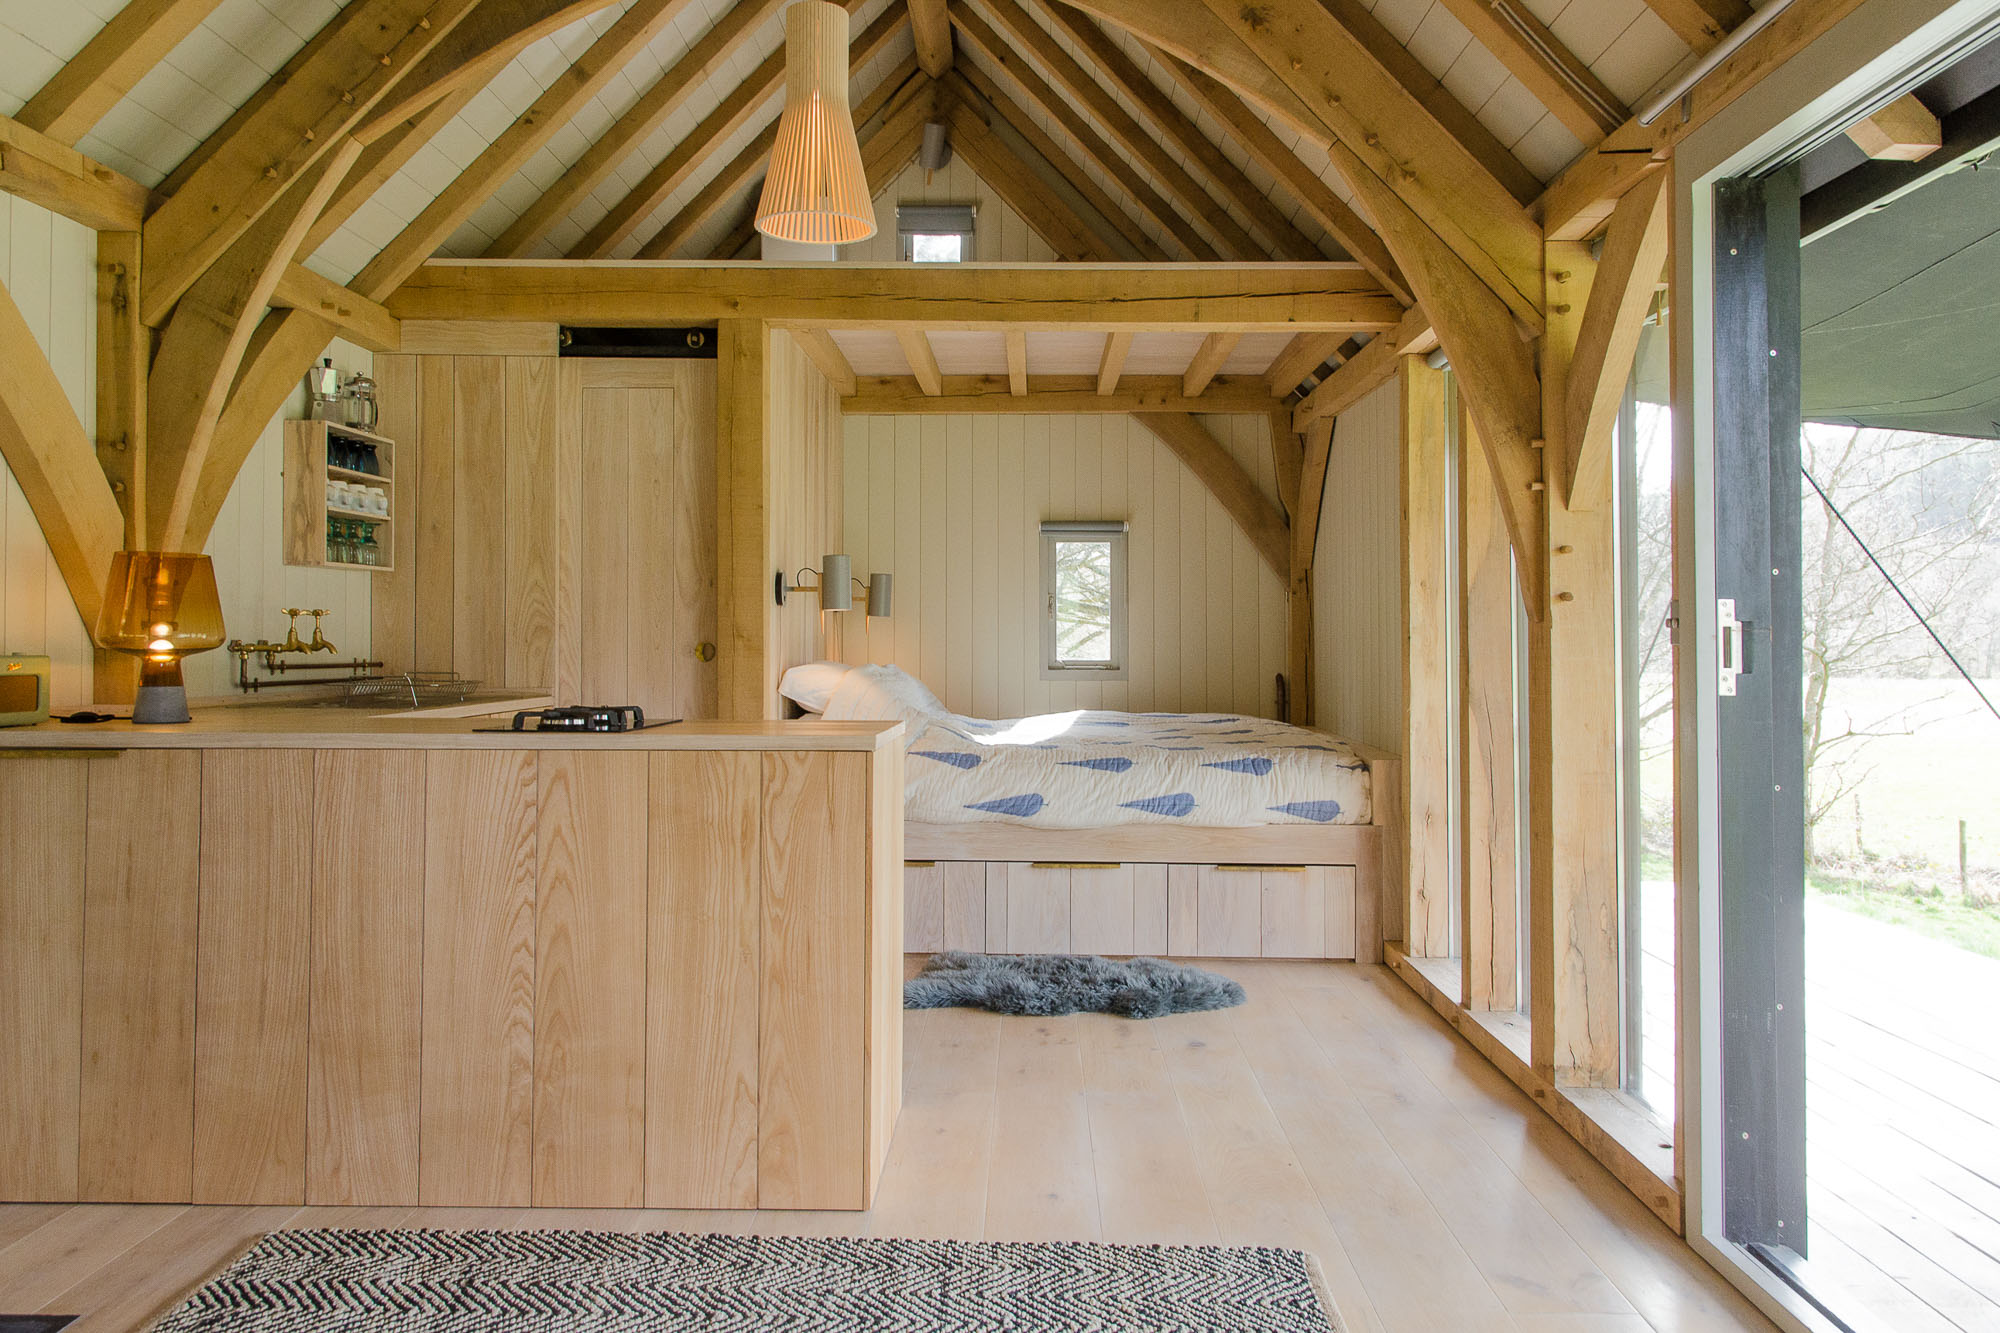 off grid wooden oak framed cabin interior with built on kitchen, bedroom and marble bathroom with oak floor and walls